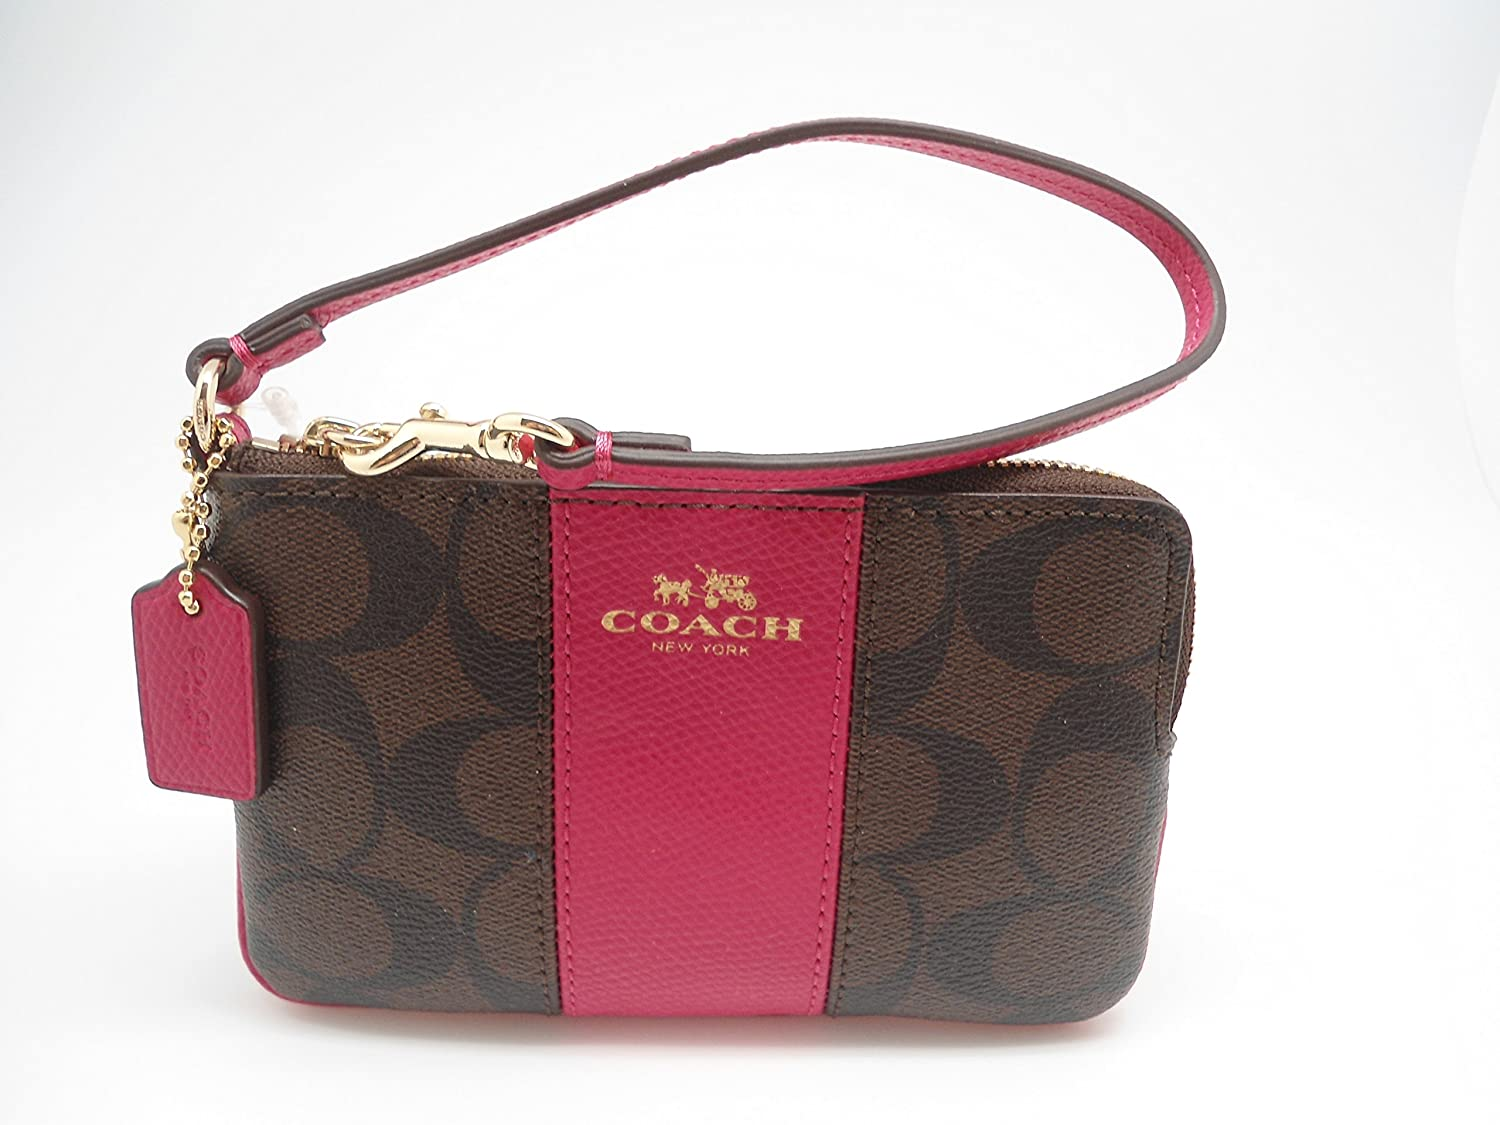 16b37af122 germany coach rogue tote bag pink purple 17993 0d1f6  where can i buy coach  f64233 signature pvc leather corner zip wristlet brown pink ruby handbags